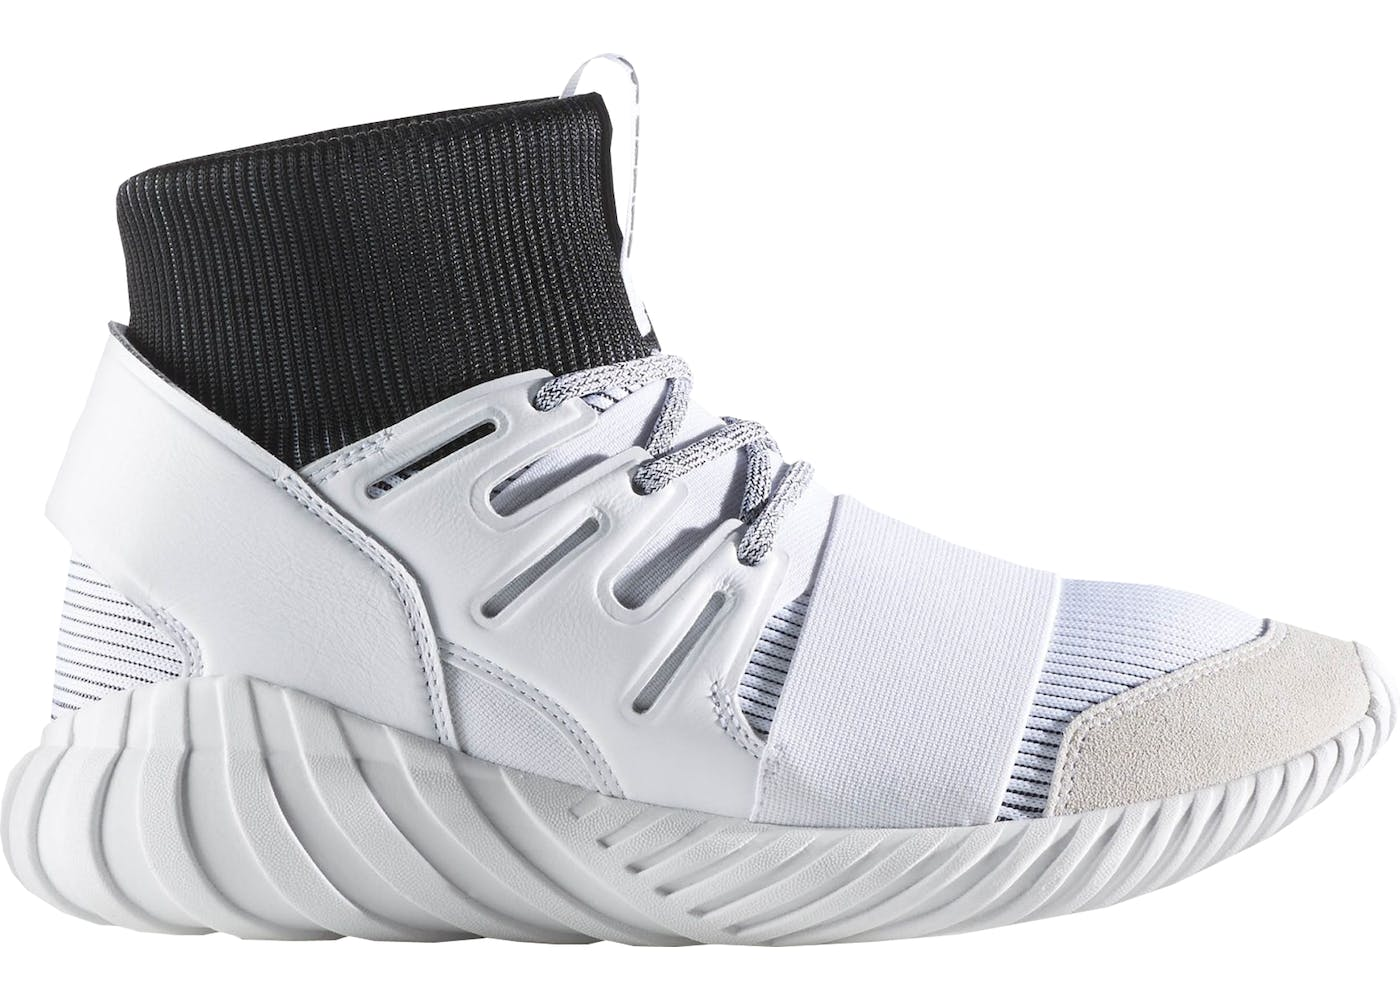 Adidas Tubular Runner Core Black On Foot Sneaker Review